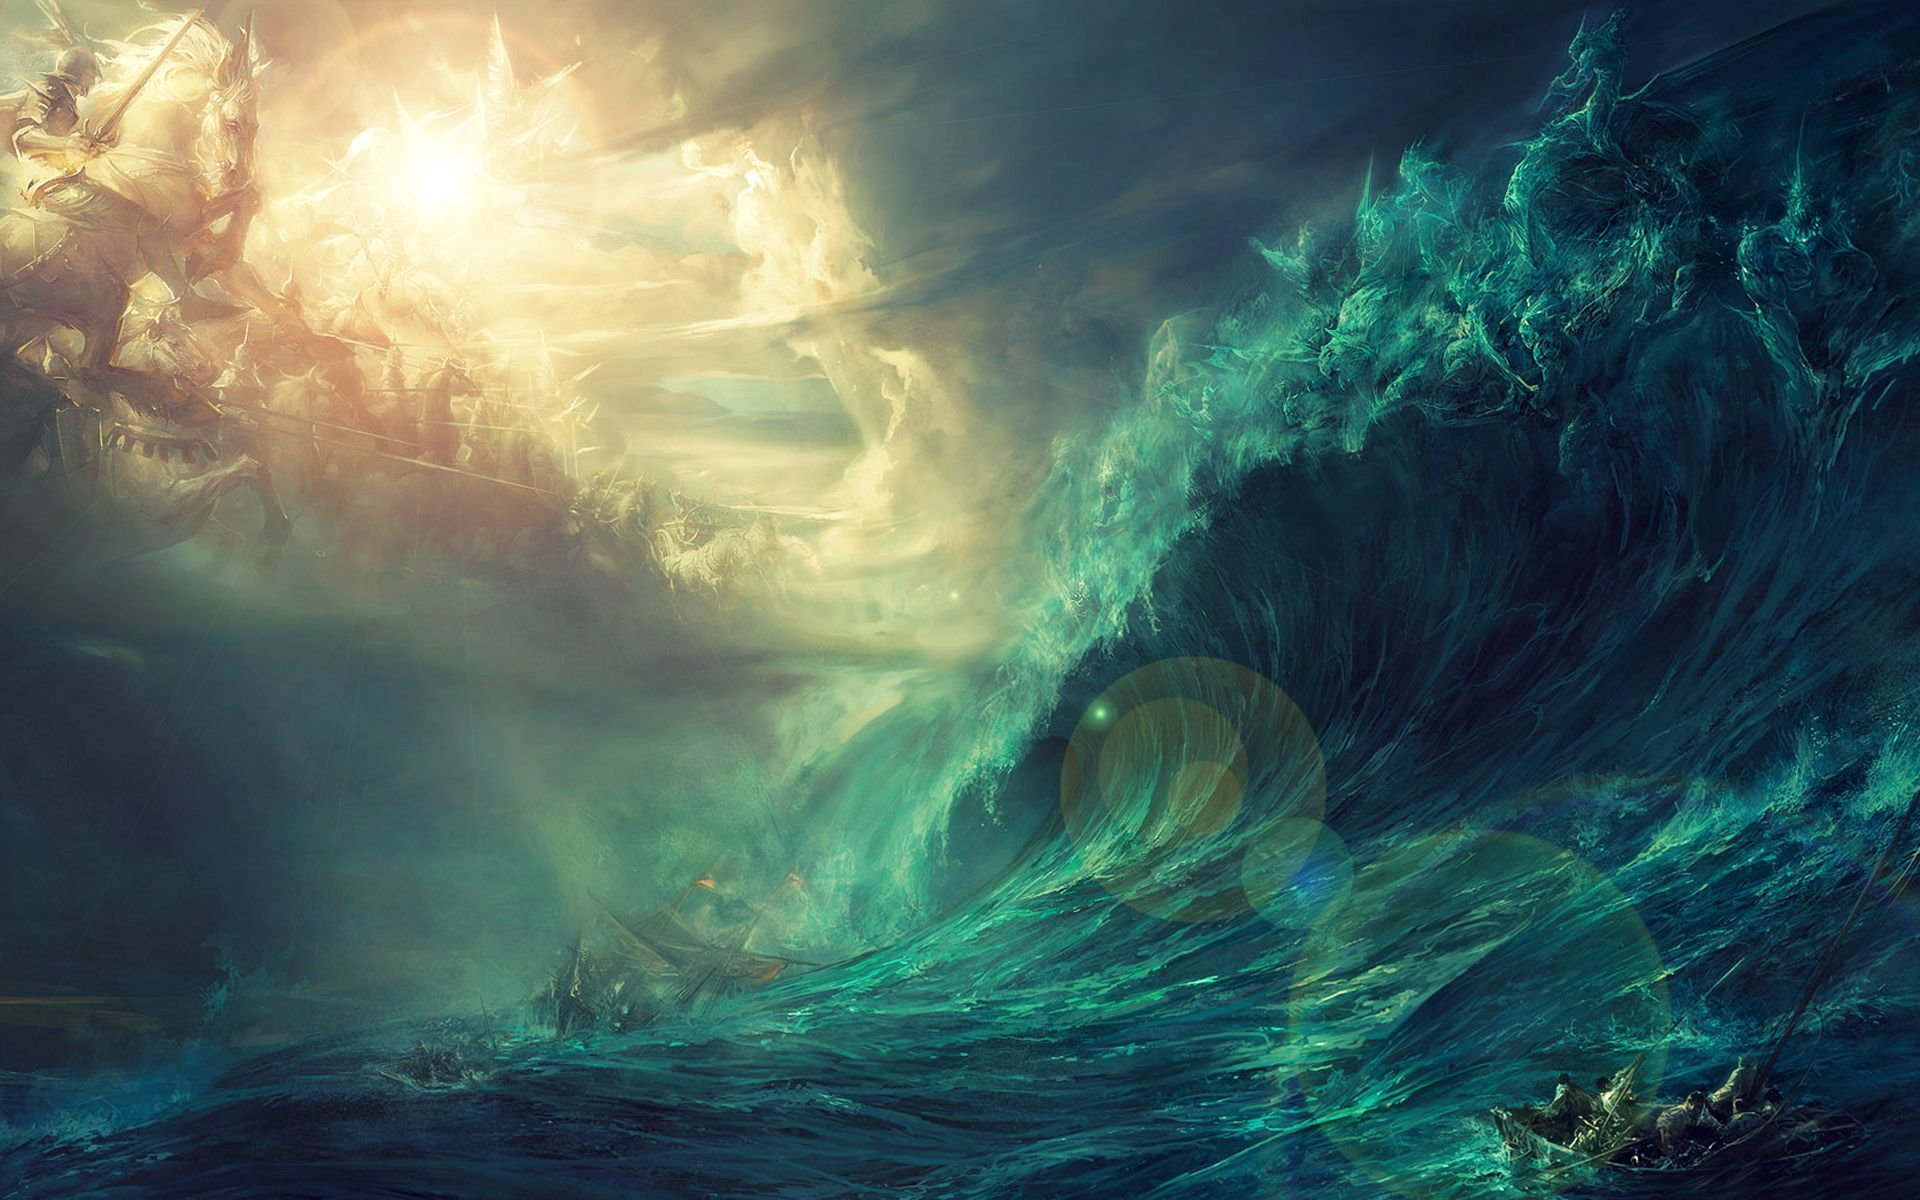 War at the stormy sea Wallpaper #1472